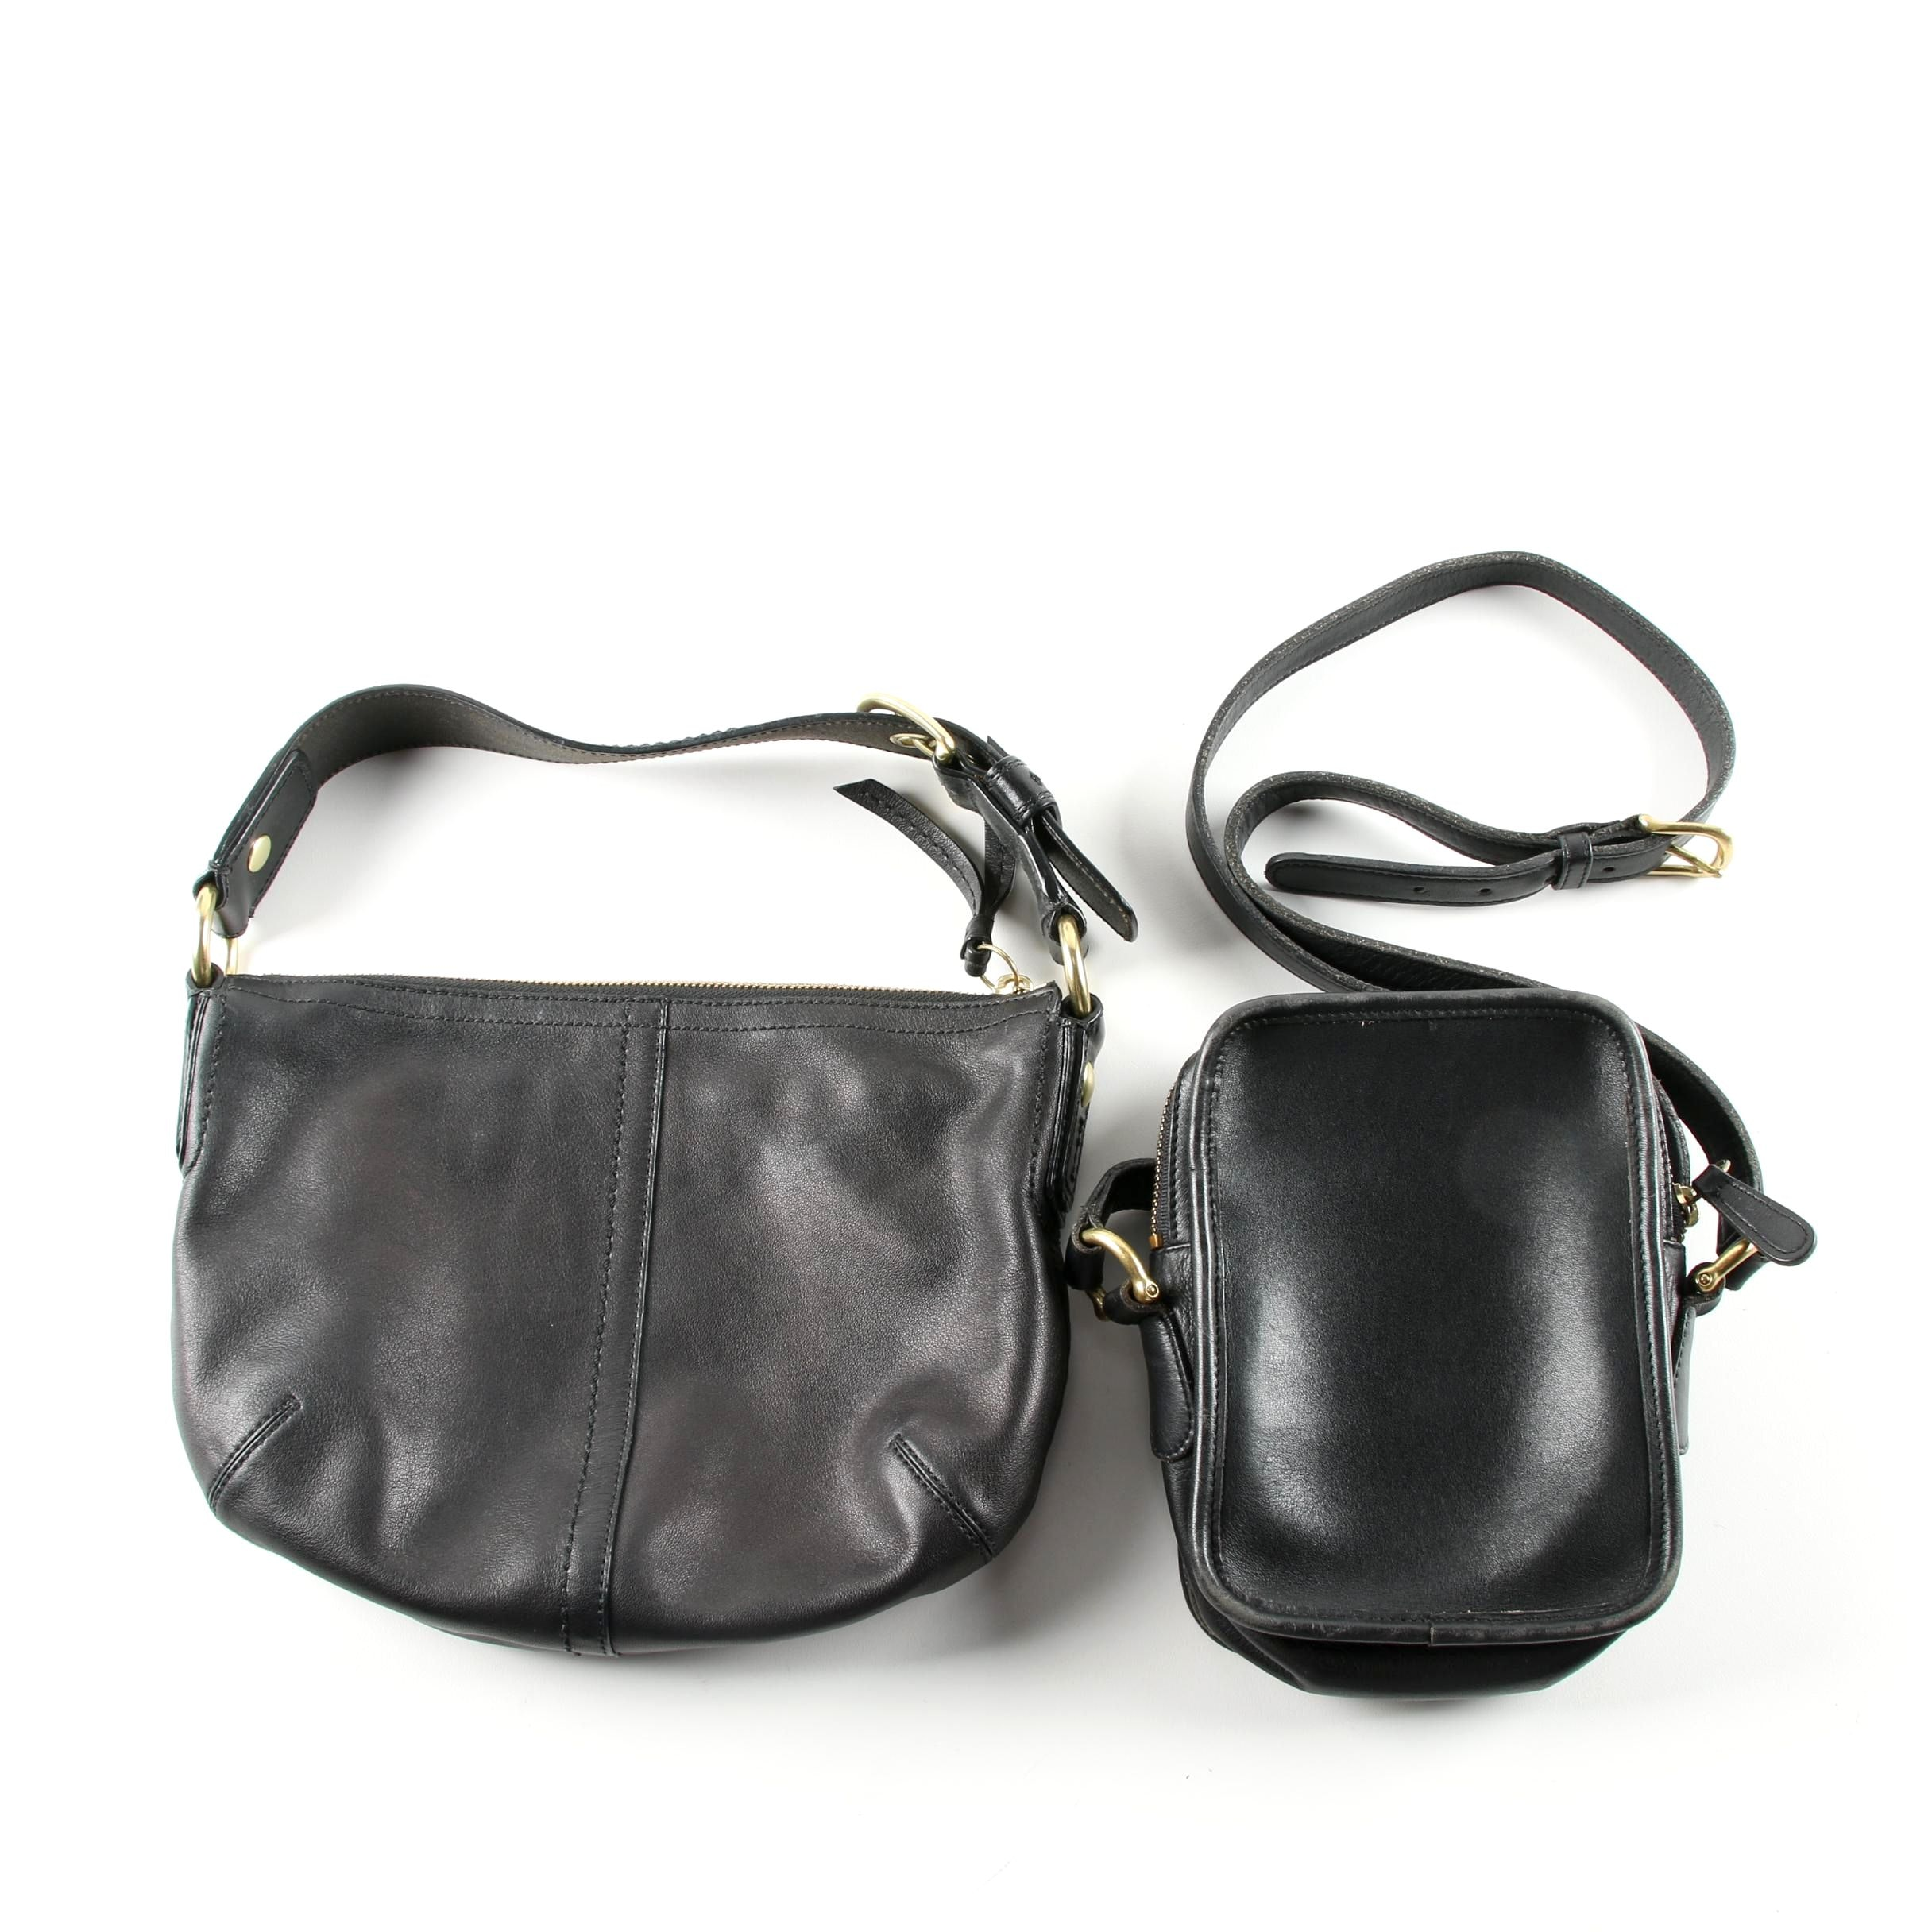 Coach Soho Black Leather Hobo Bag and Vintage Kit Bag